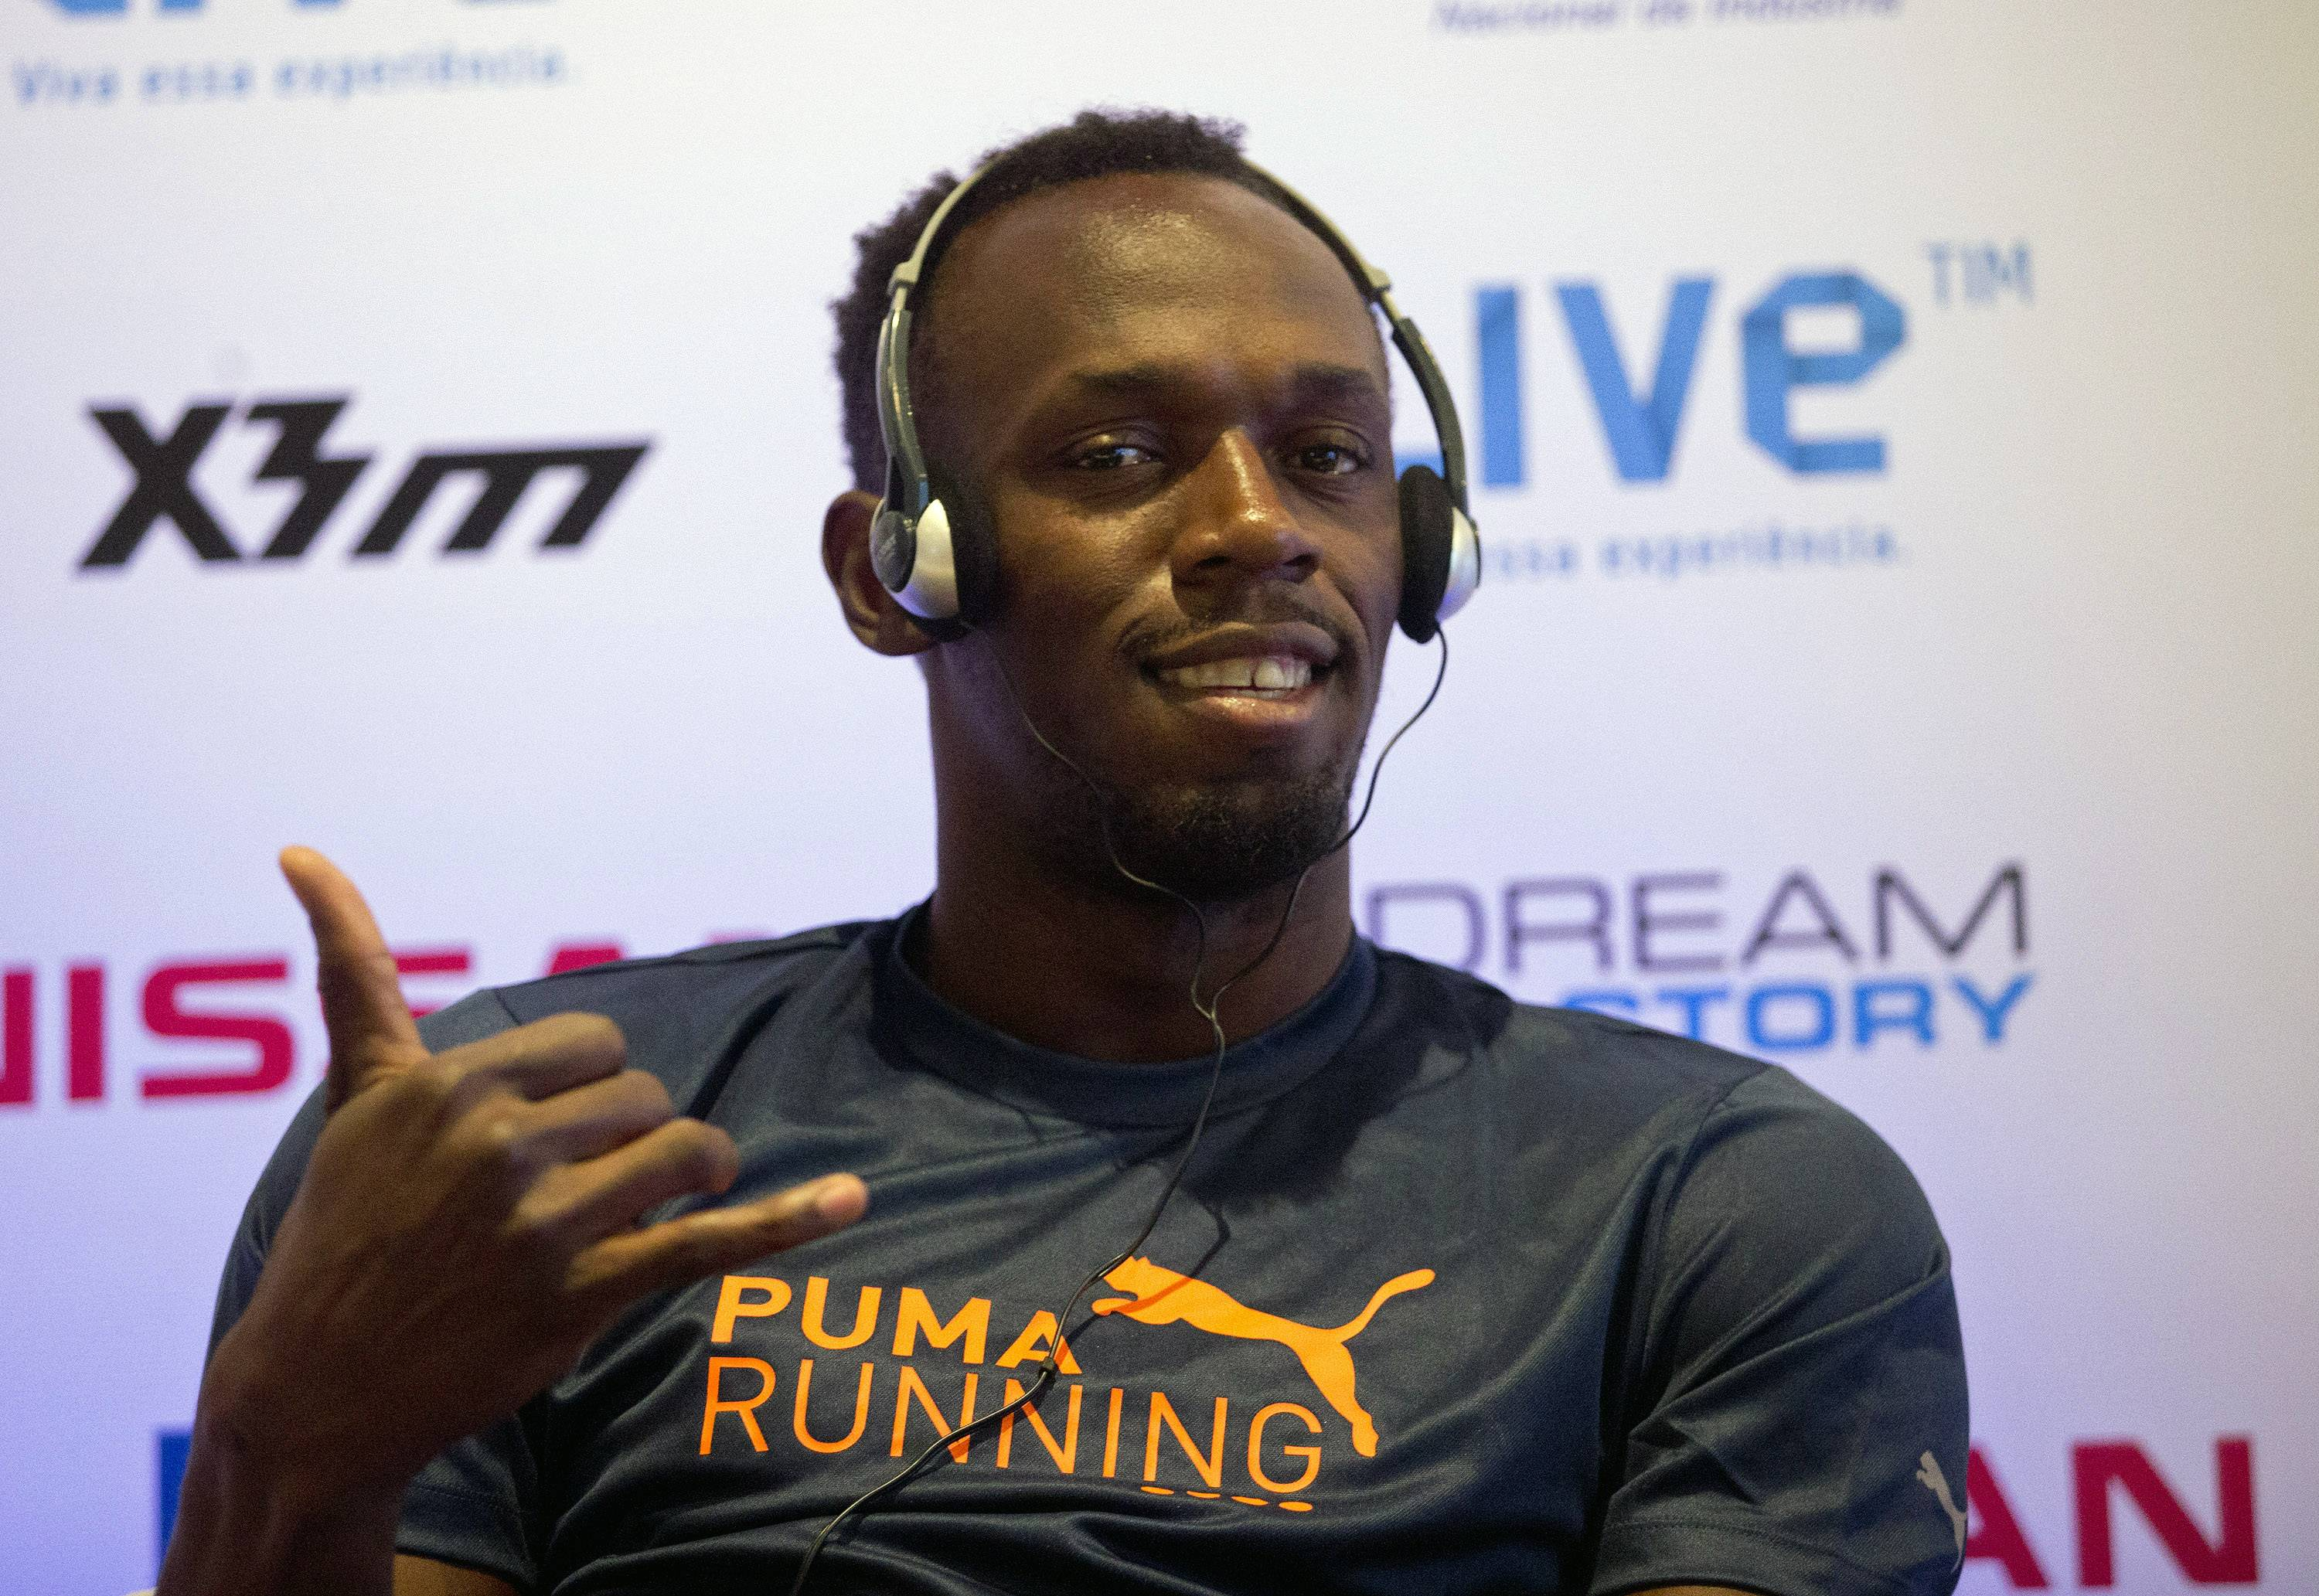 Jamaican Usain Bolt strikes a pose during a news conference Friday promoting the 'Mano a Mano' challenge in Rio de Janeiro, Brazil.